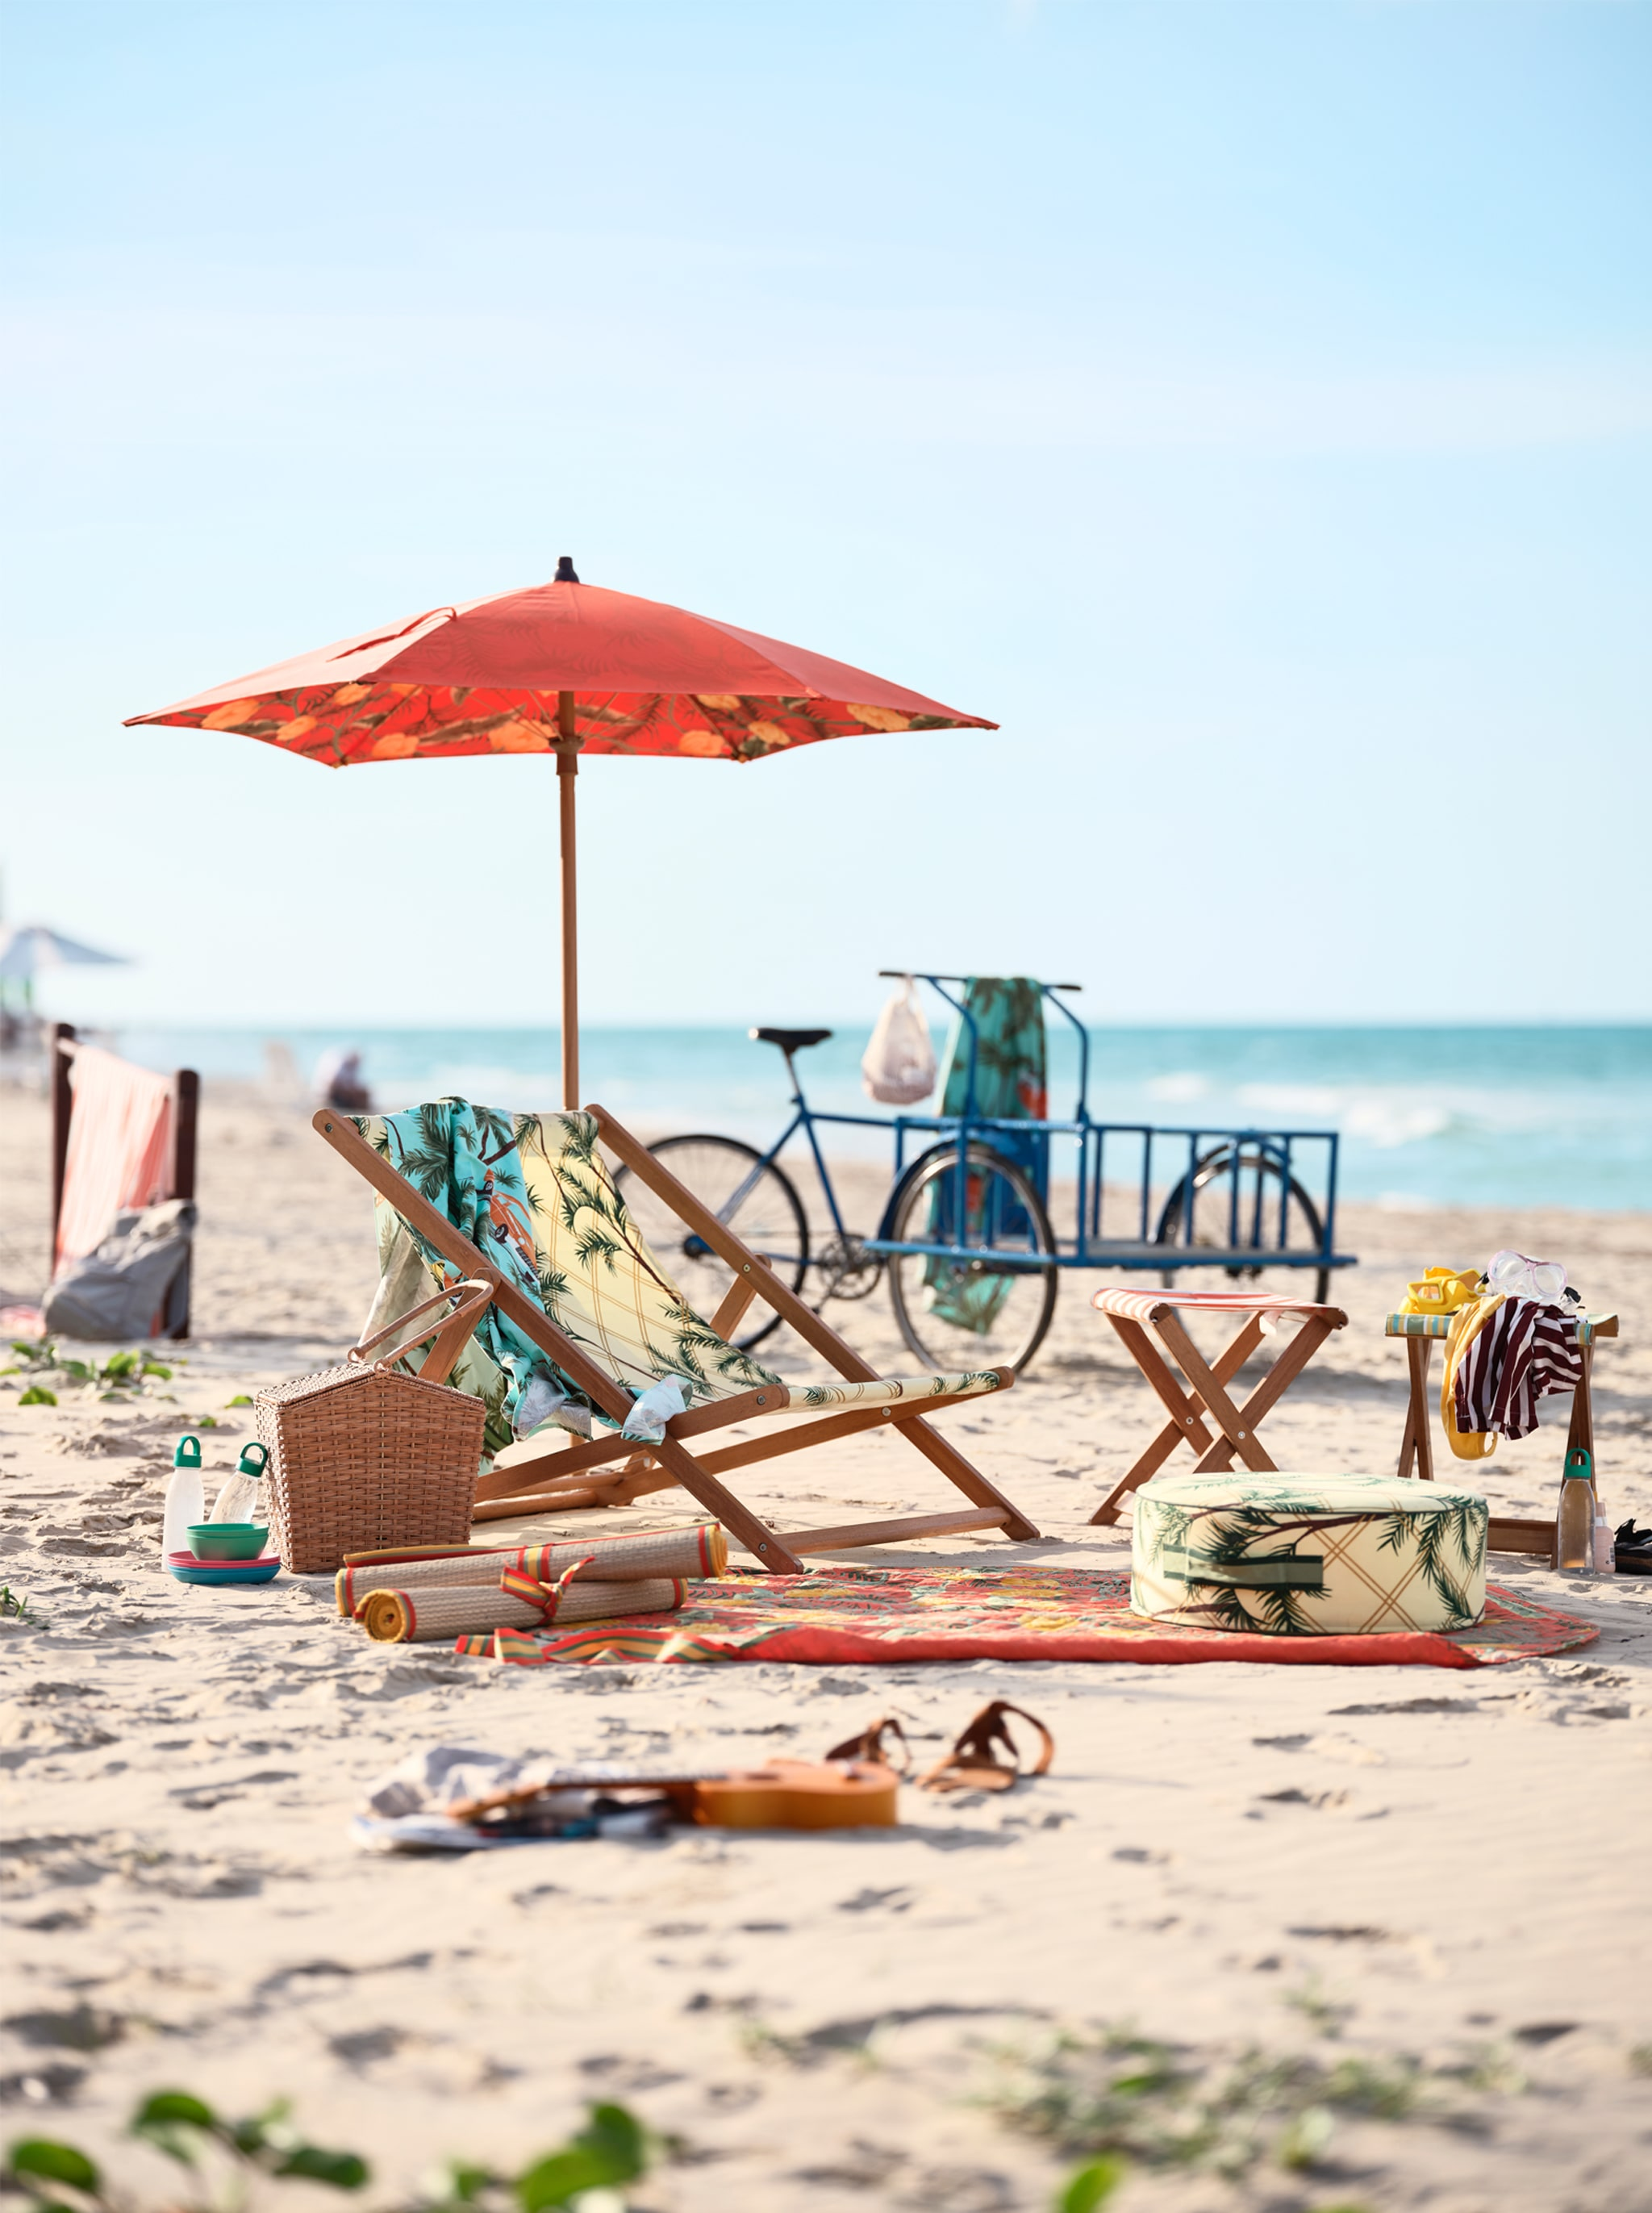 A patterned beach chair with an umbrella and towels, standing on a sandy beach. A blue bicycle stands in the background.